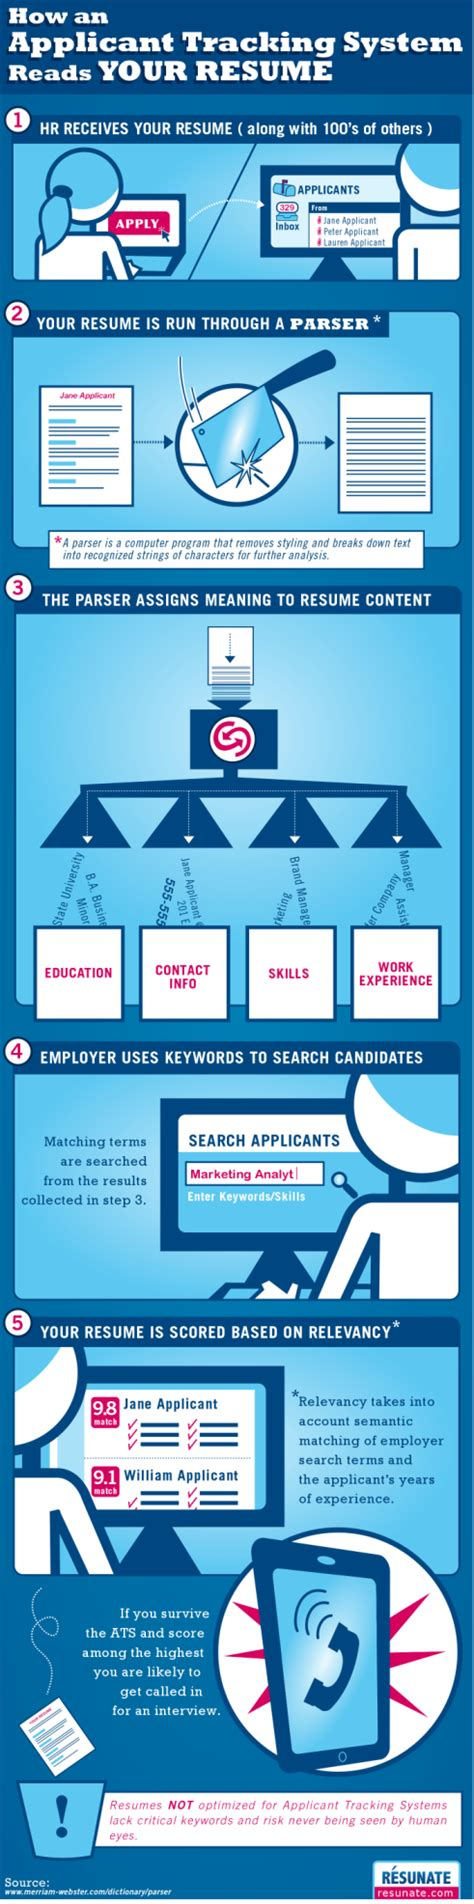 infographic how an applicant tracking system reads your